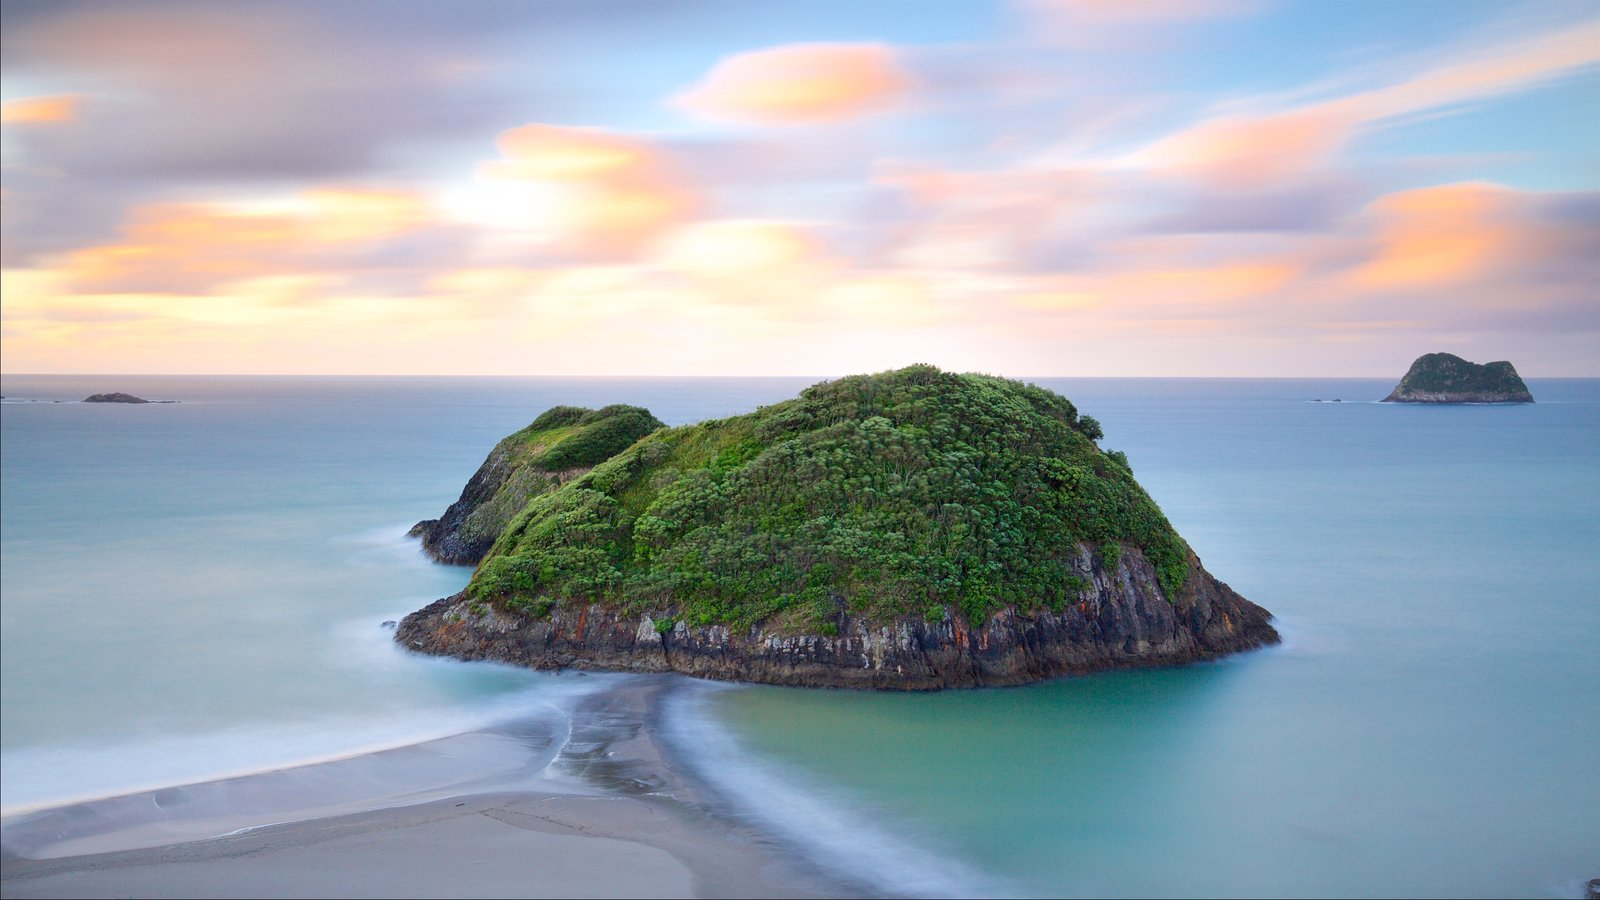 Sugar Loaf Marine Reserve which includes a sunset, a bay or harbor and island views